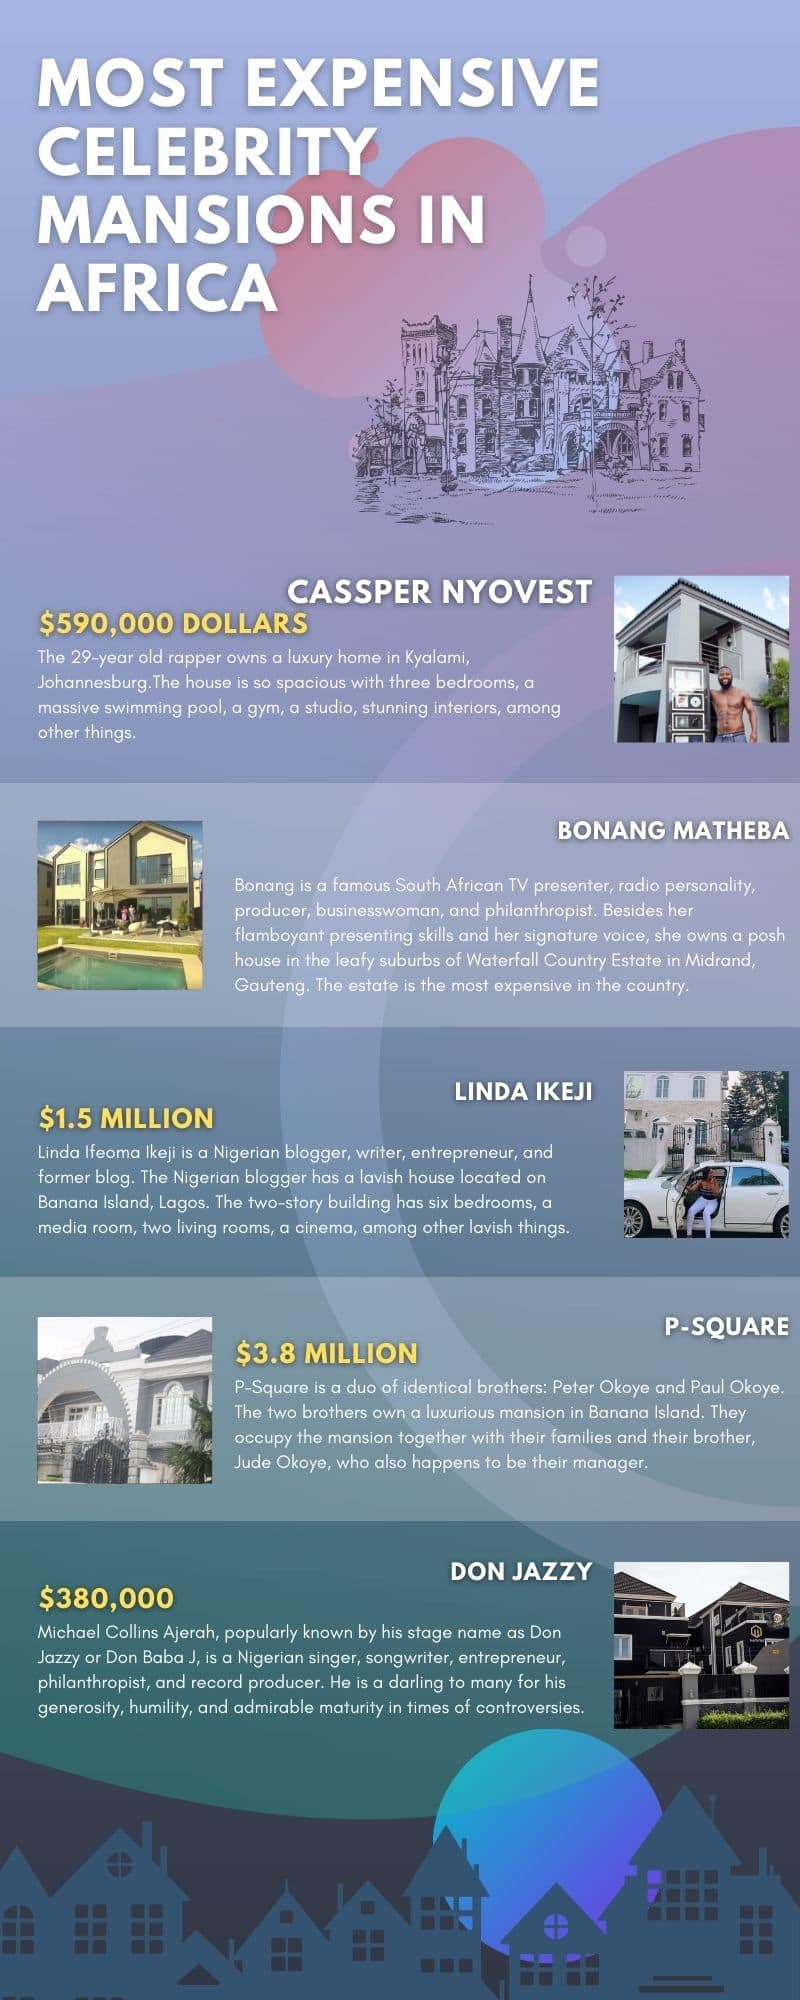 biggest and most expensive celebrity mansions in Africa 2020